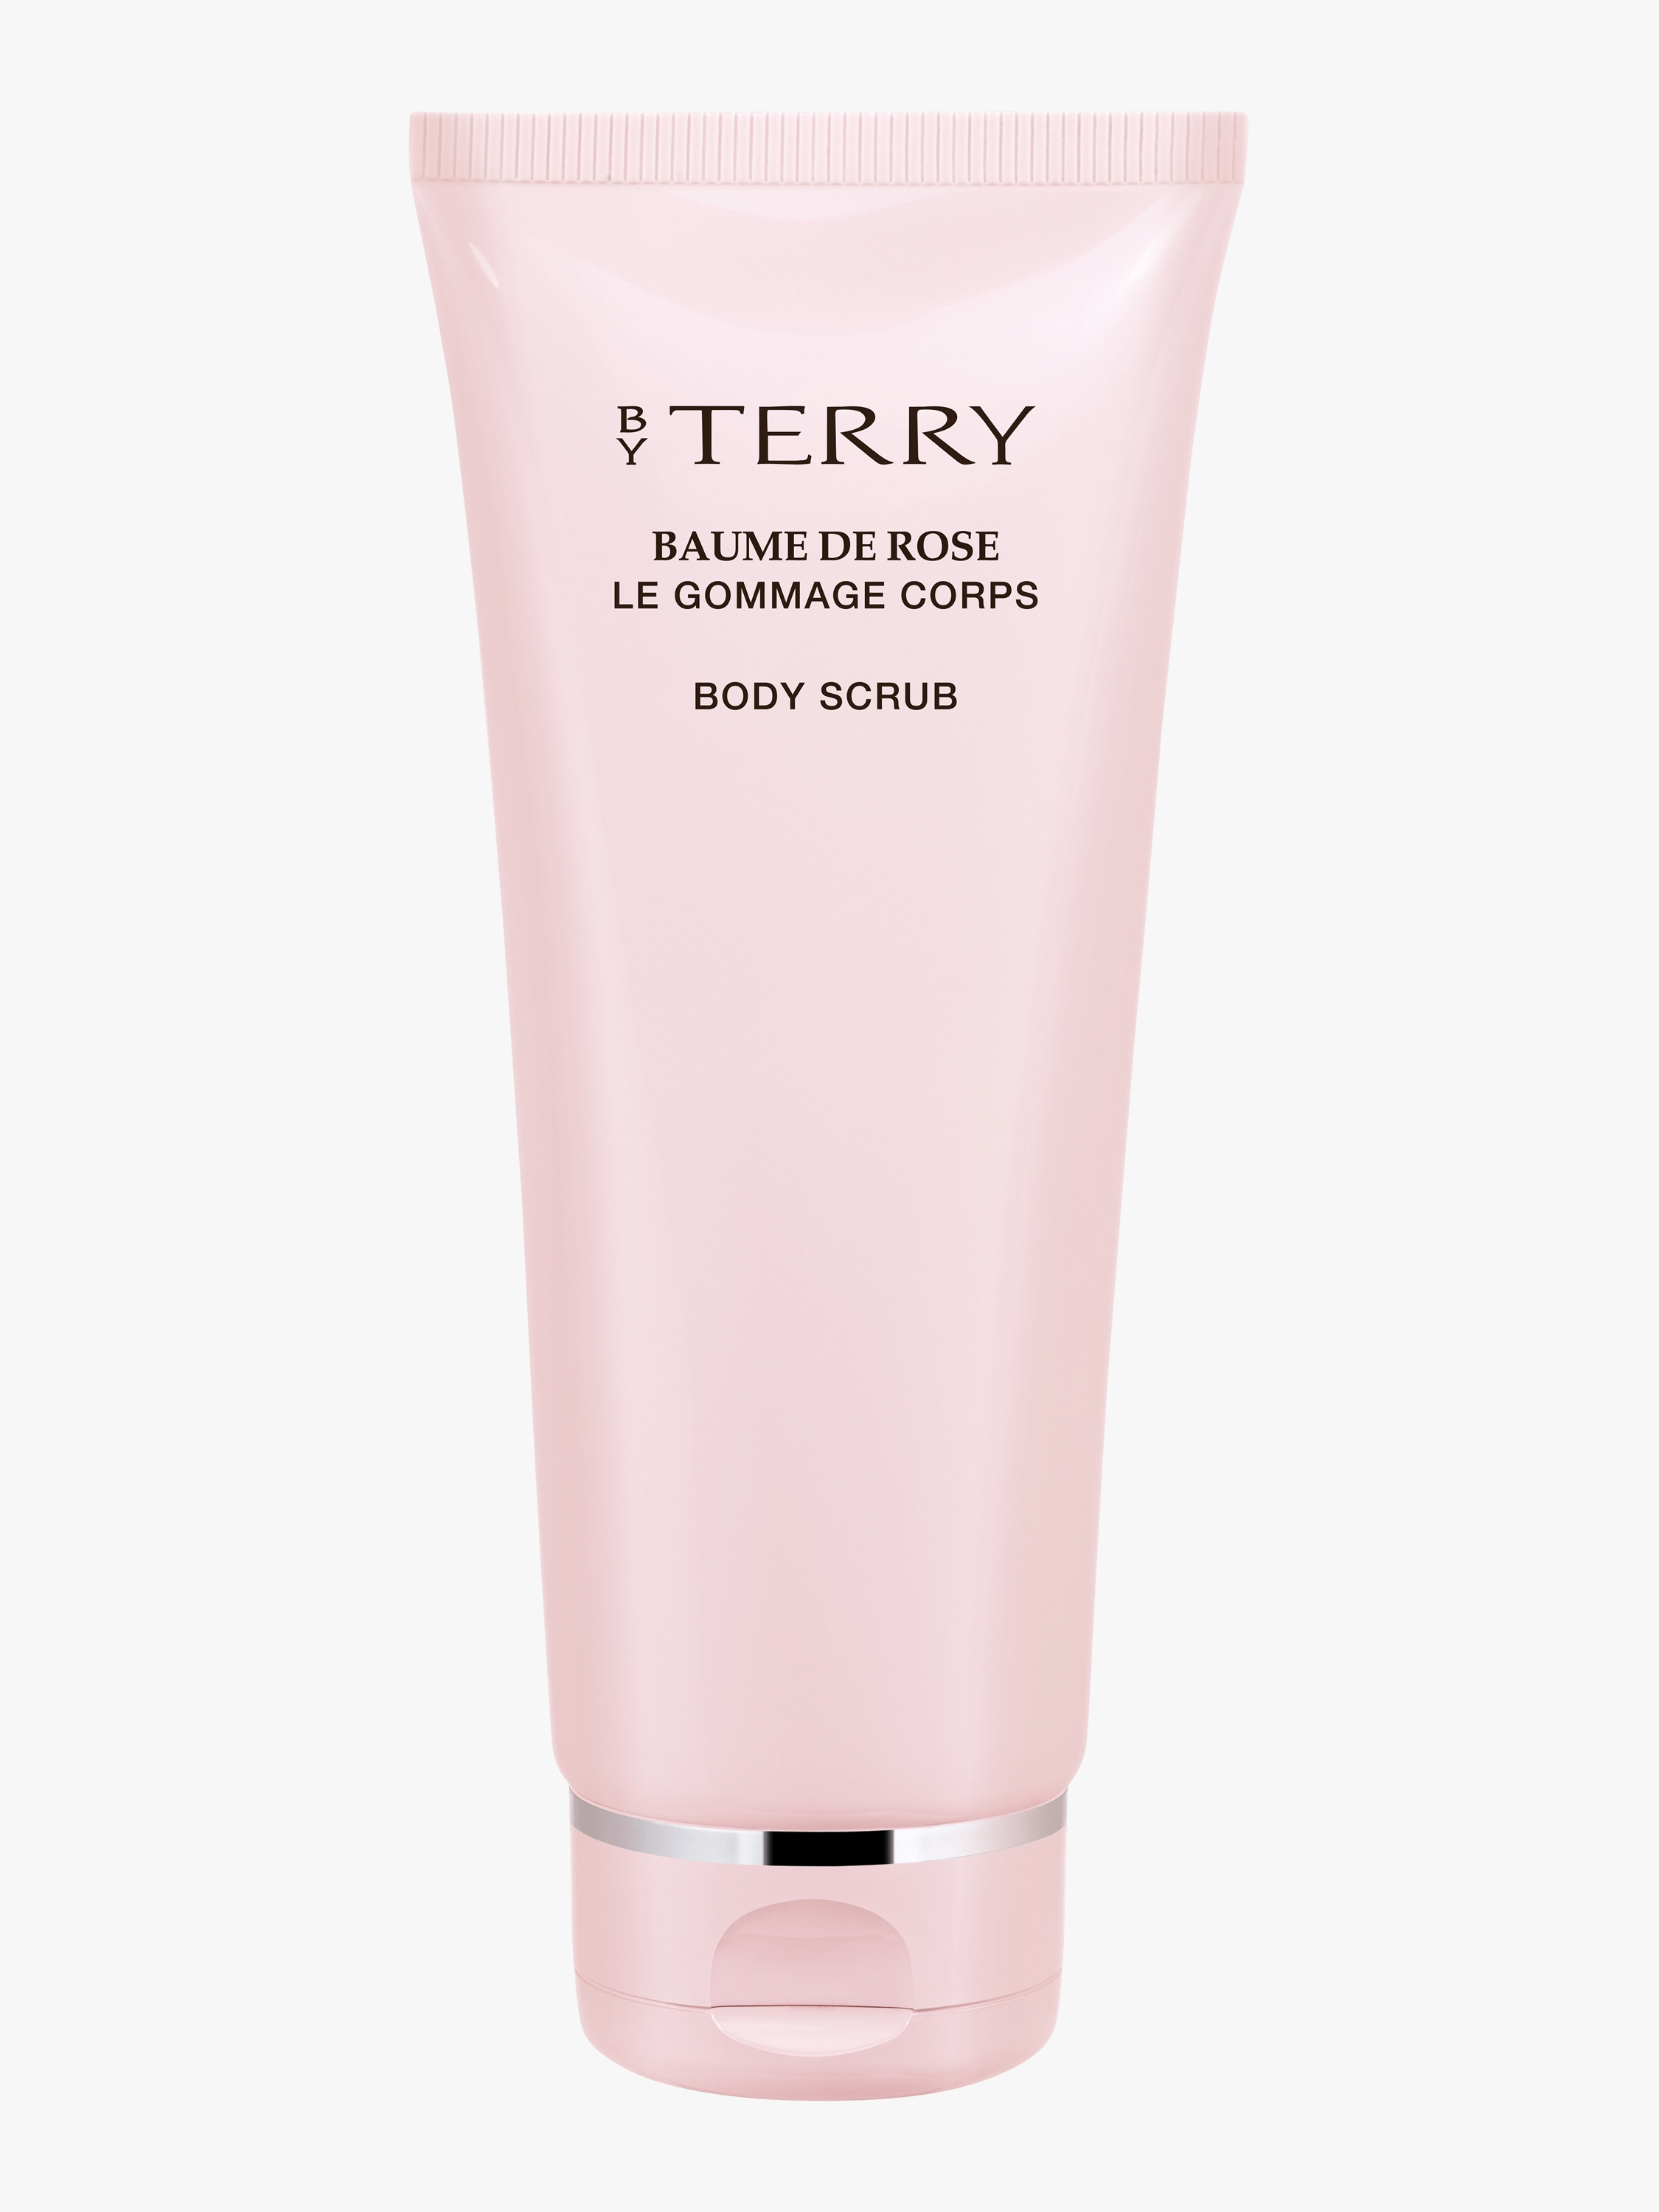 By Terry Baume De Rose Le Gommage Corps Body Scrub 2